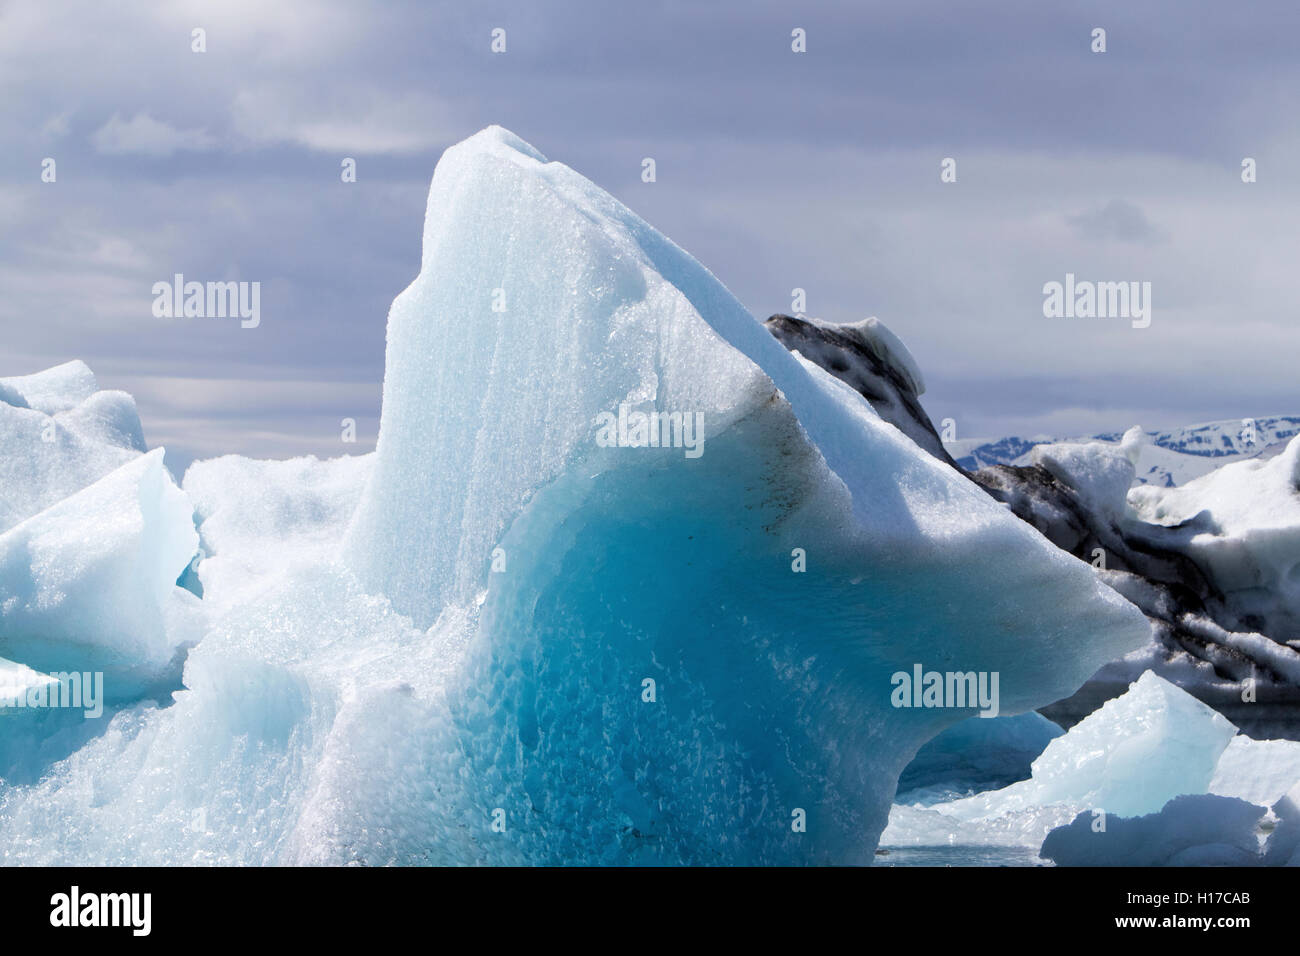 wind and water sculpted iceberg at Jokulsarlon glacial lagoon Iceland - Stock Image